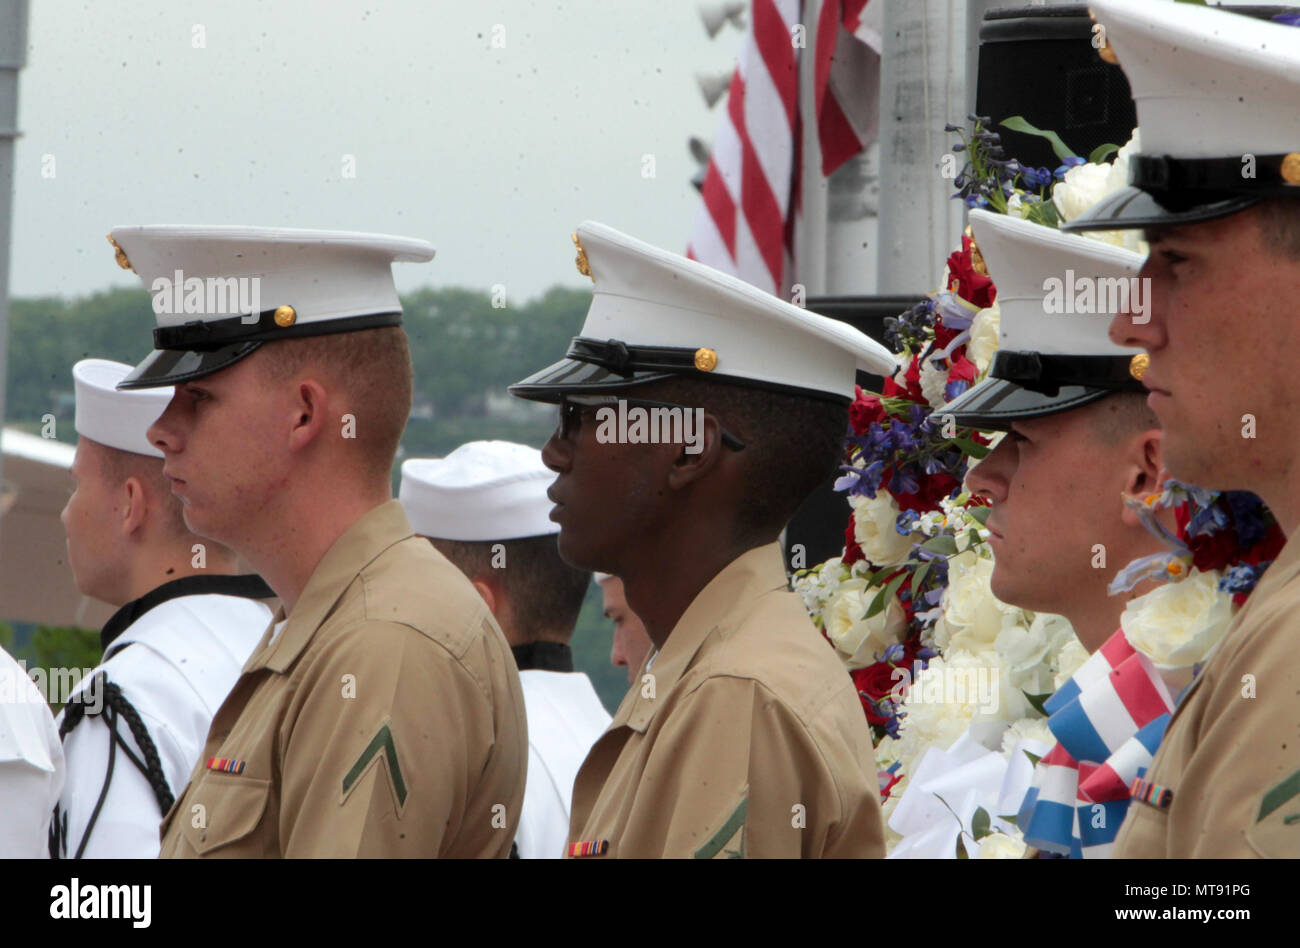 New York, NY, USA. 28th May, 2018. U.S Marines attend the 2018 Memorial Day Ceremony held aboard the U.S.S Intrepid Sea, Air, Space Museum Complex on May 28, 2018 in New York City. Credit: Mpi43/Media Punch/Alamy Live News - Stock Image